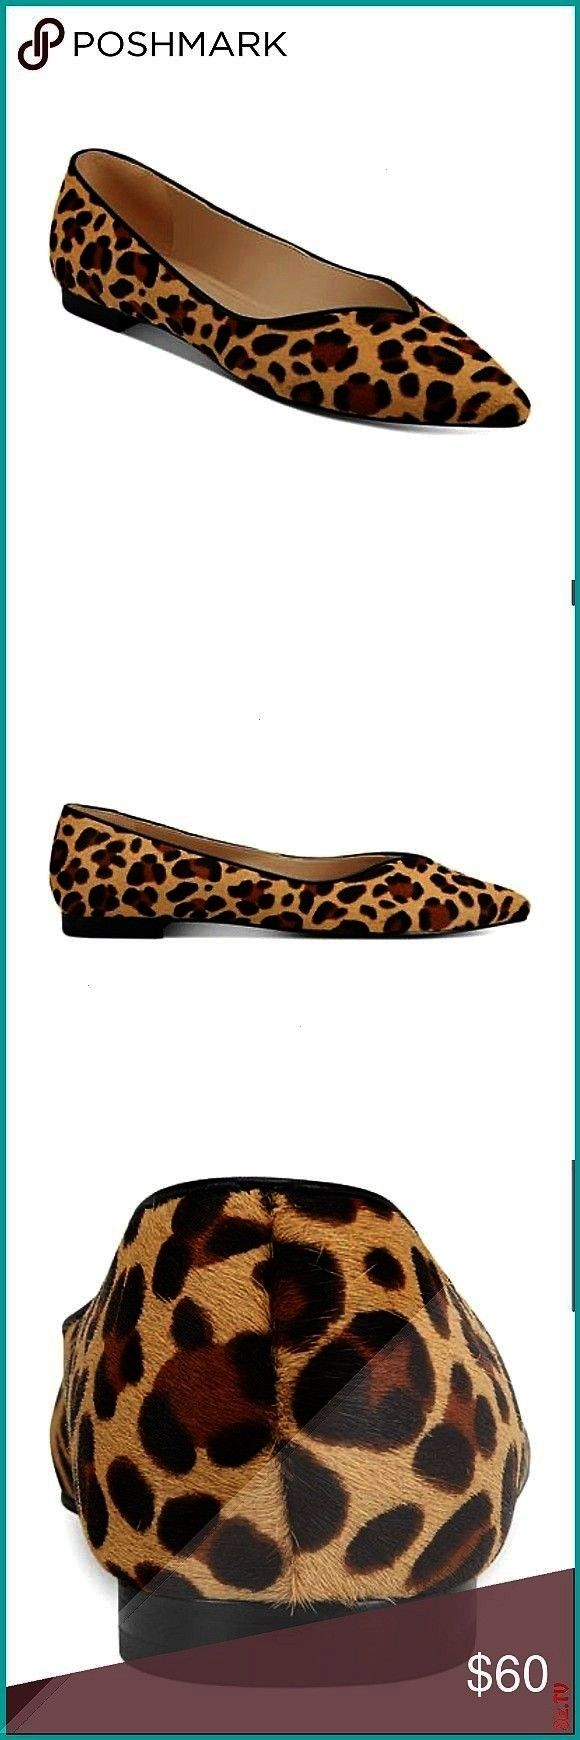 Pointed Toe Leopard Flats Size 7 5 NEW Marc Fisher Pointed Toe Leopard Flats Size 7 5 Fits true to size I am between a 7 5 and 8 Br NEW Marc Fisher Pointed Toe Leopard Fl...